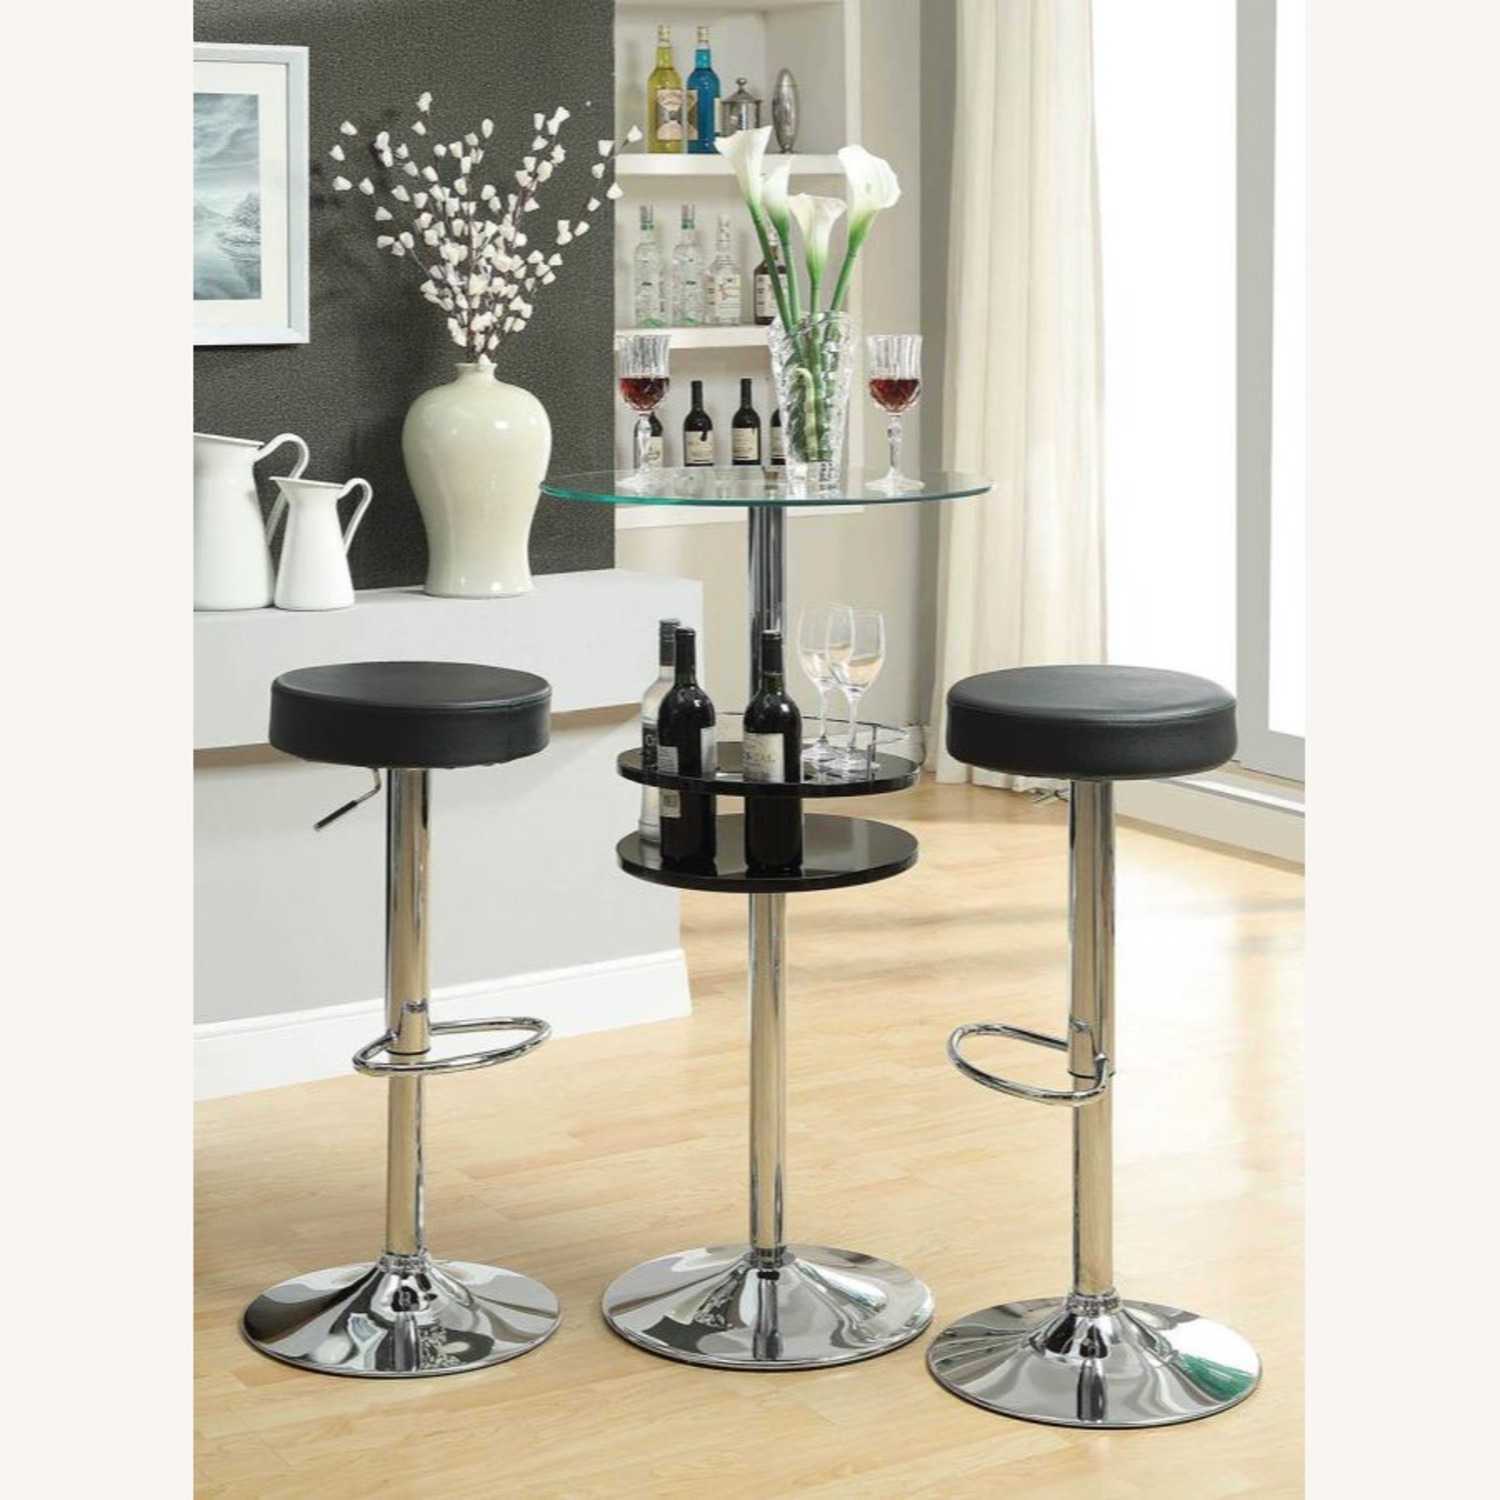 Bar Table In Glossy Black W/ Tall Pedestal Base - image-3